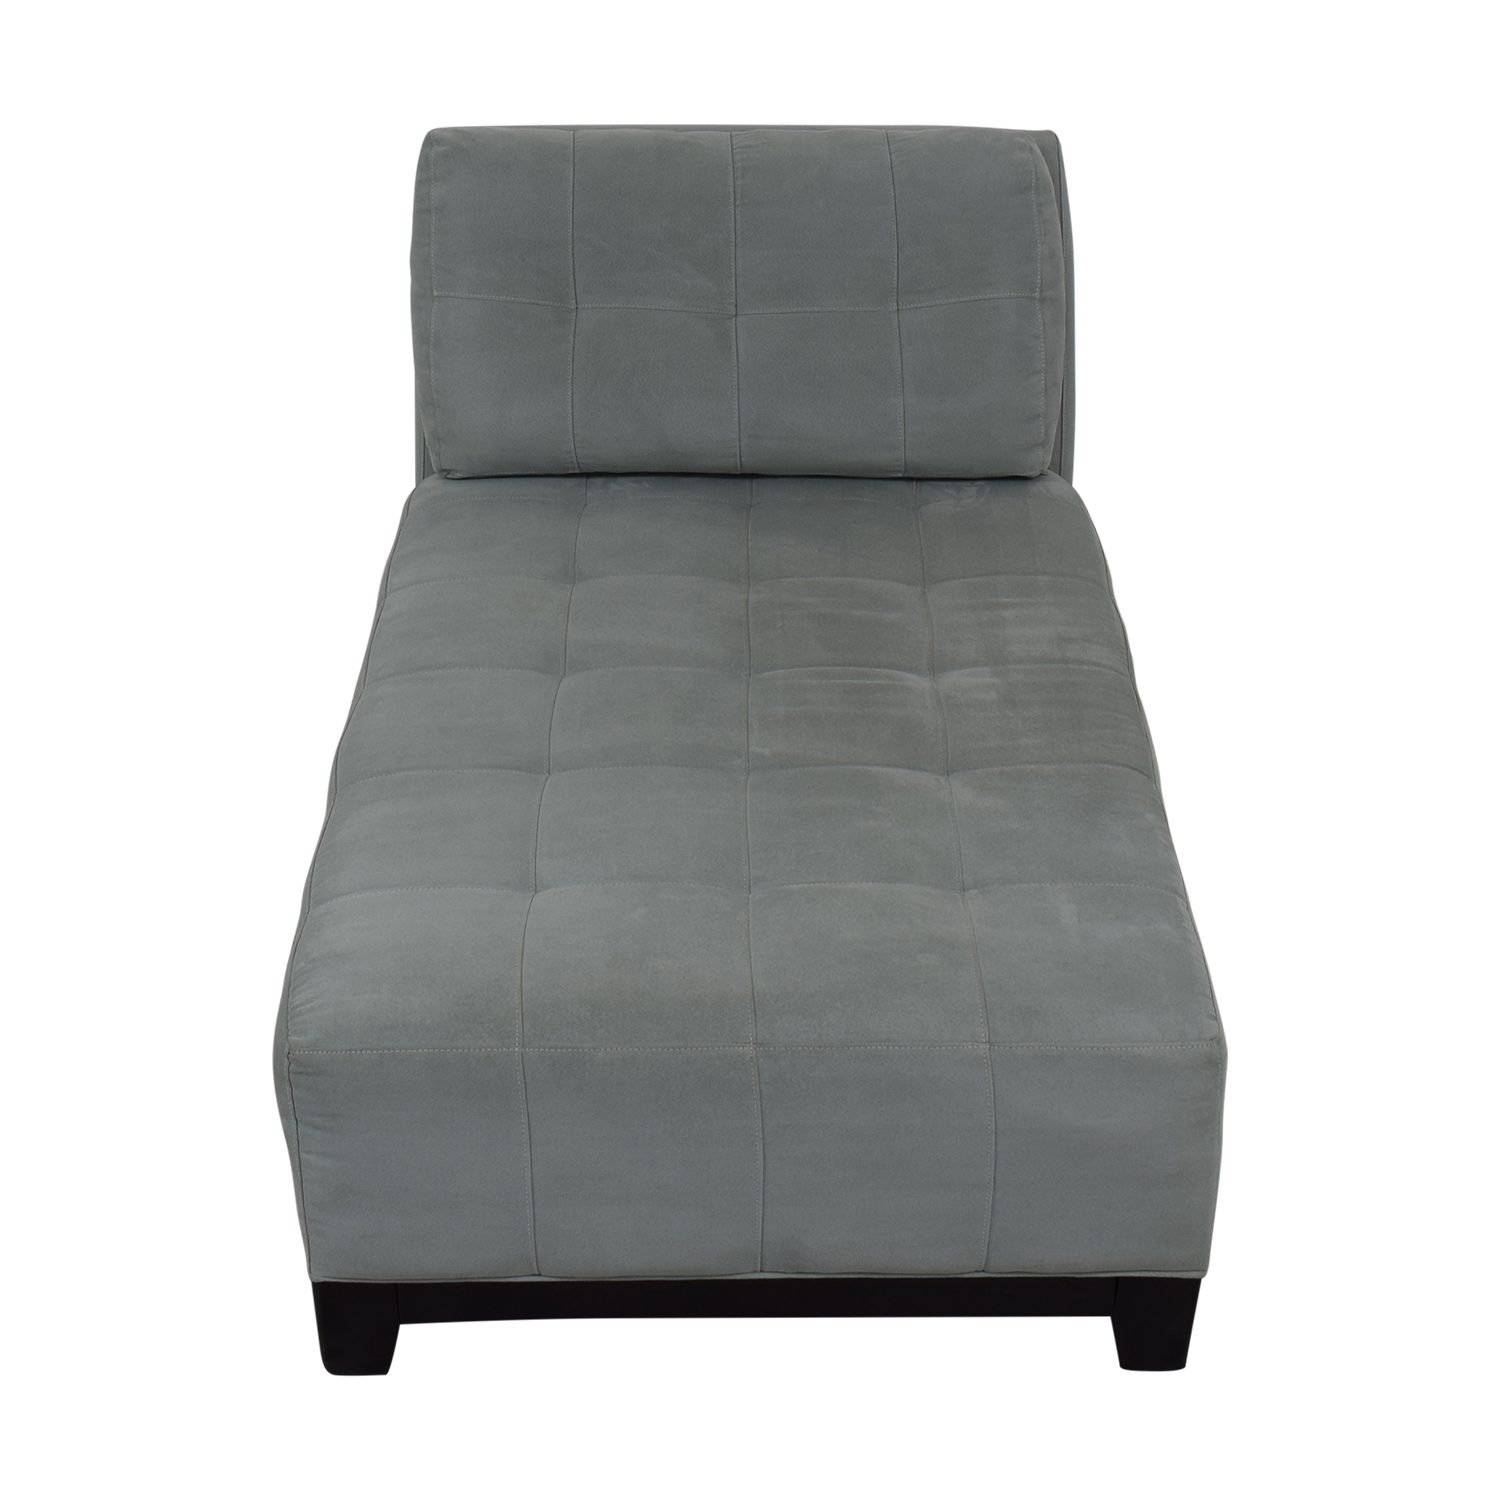 HM Richards Furniture HM Richards Furniture Chaise Lounge Sofas